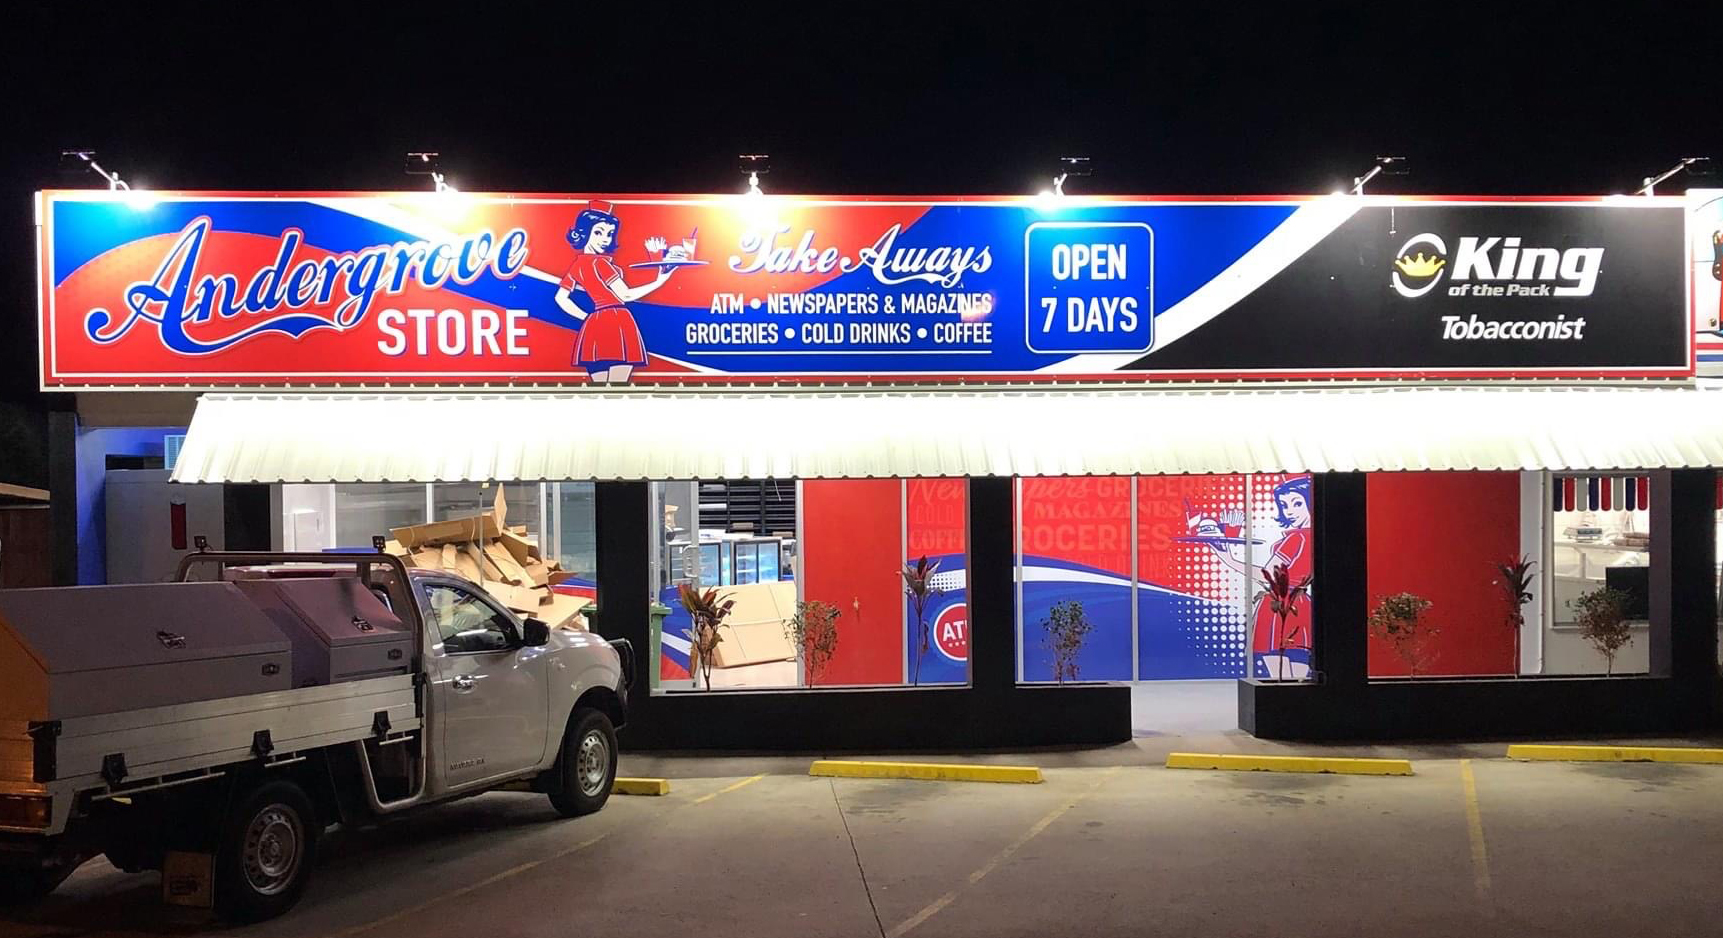 andergrove store shop front